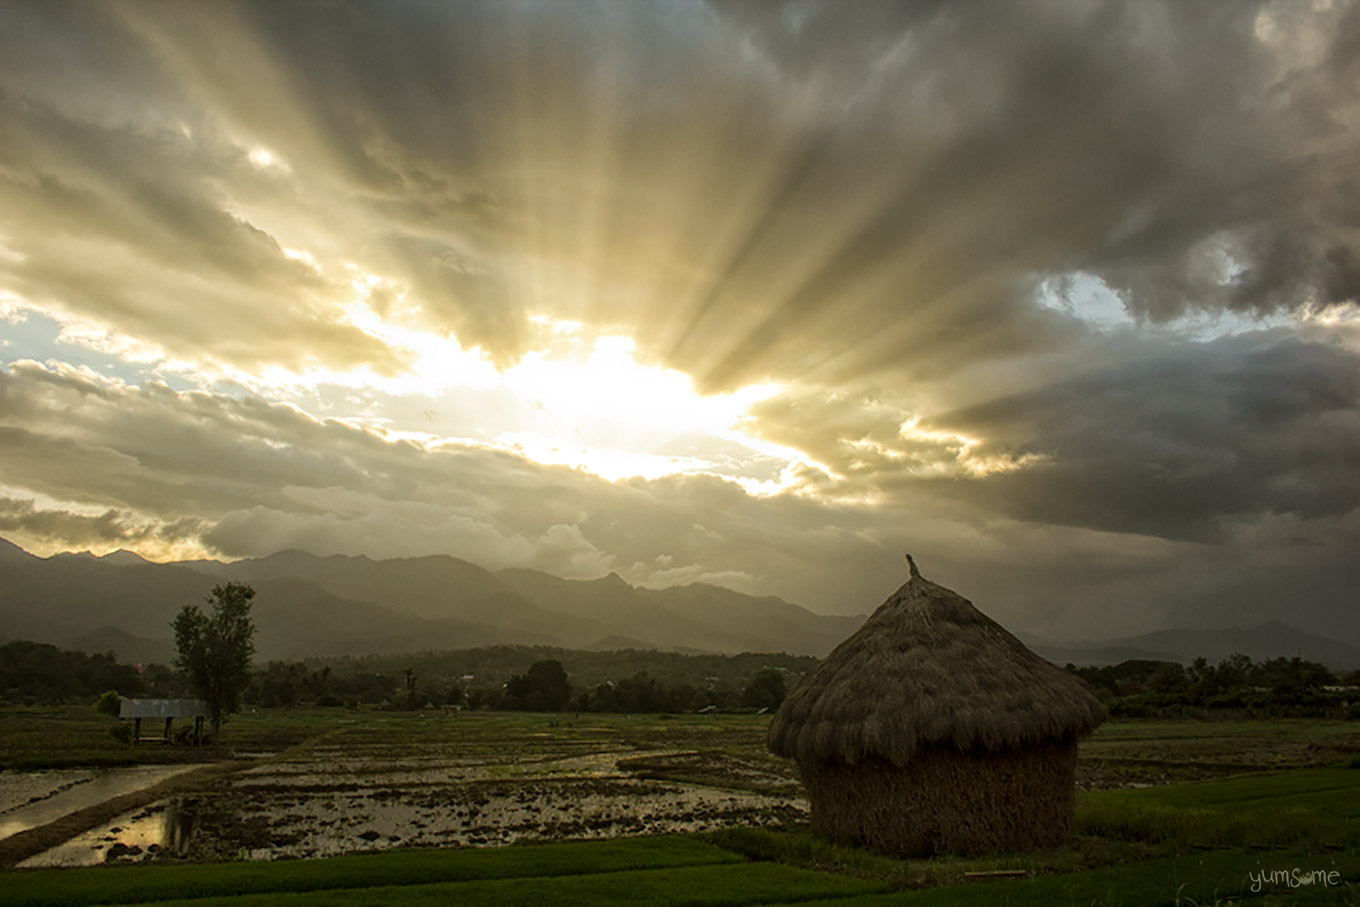 Rays of sunlight over a wet rice field and a haystack.